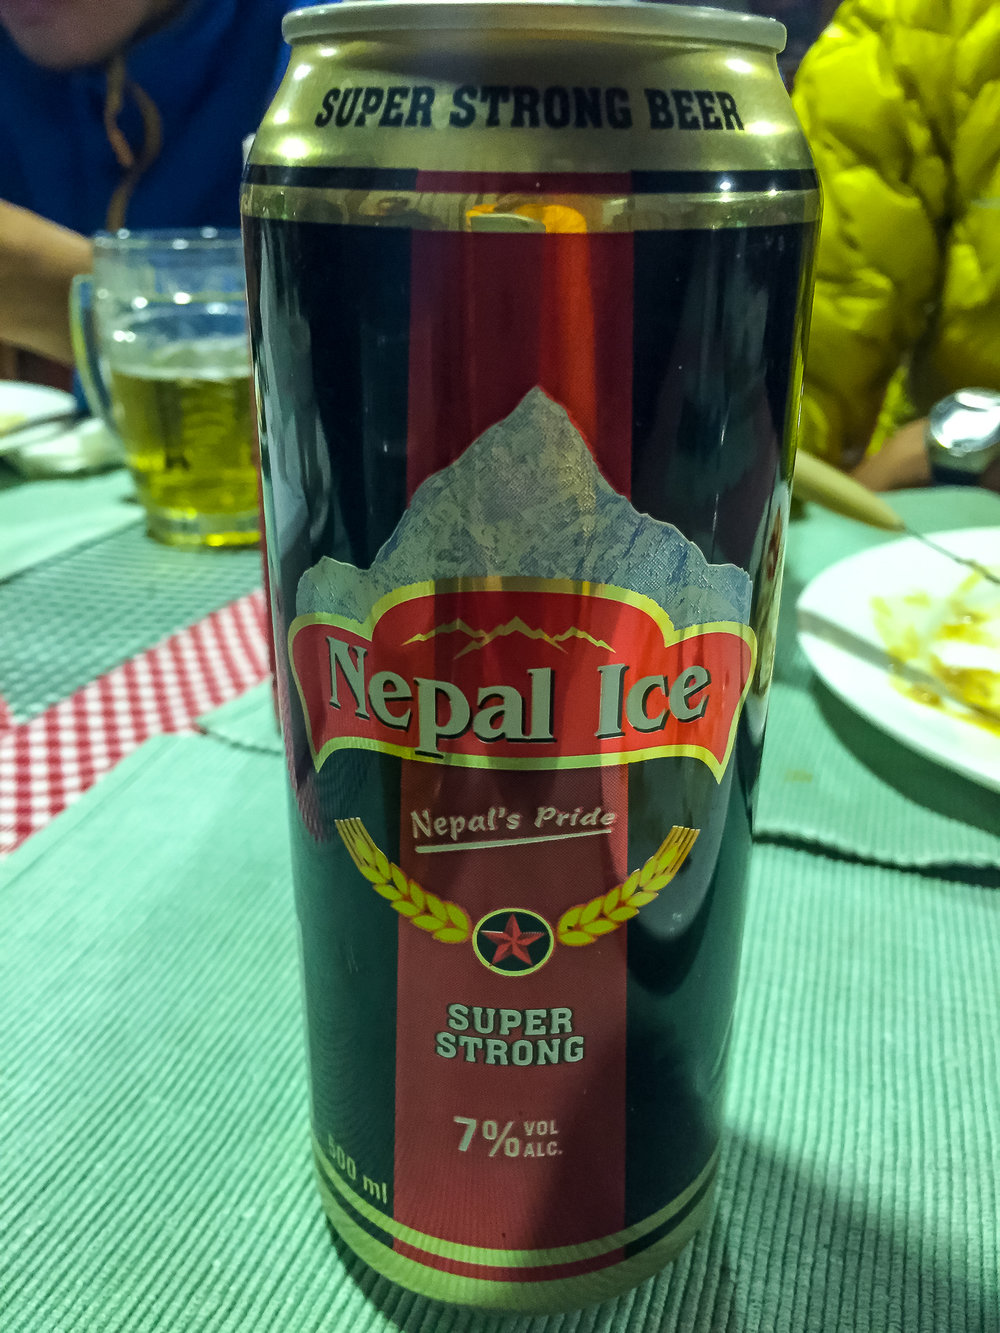 This was the best Nepali beer I've tried!